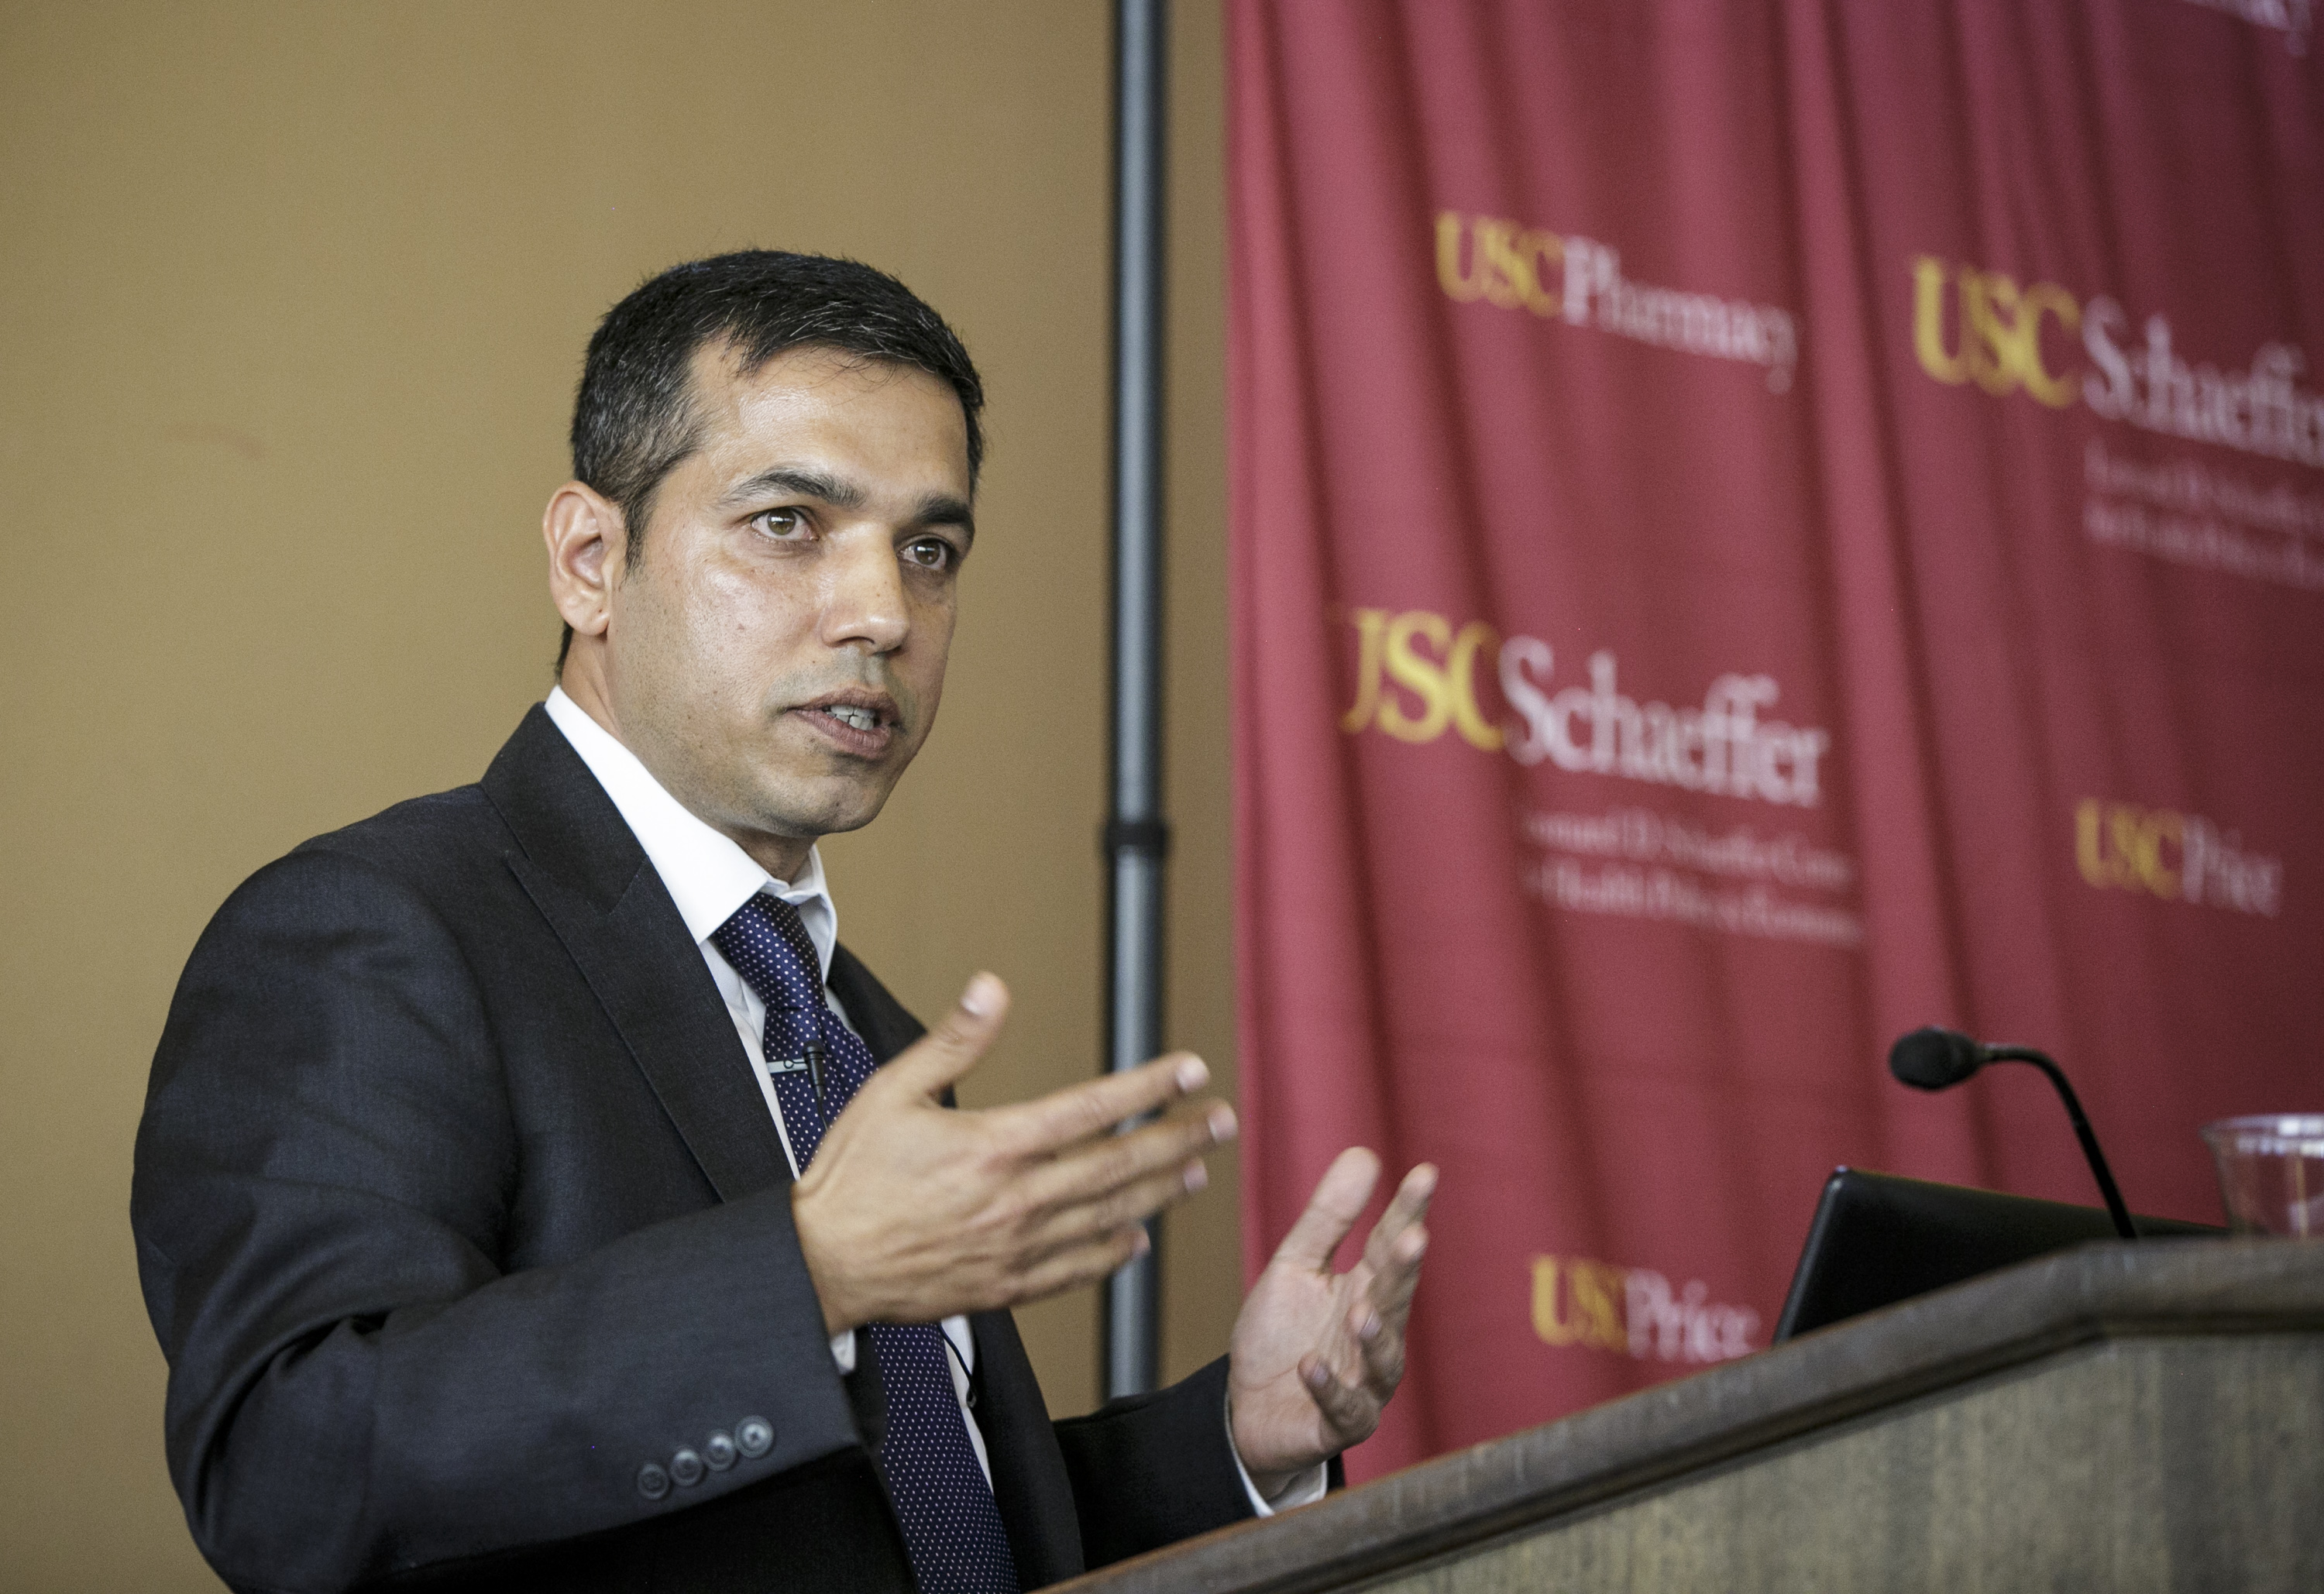 Professor Neeraj Sood presents on why Medicare should not negotiate drug prices